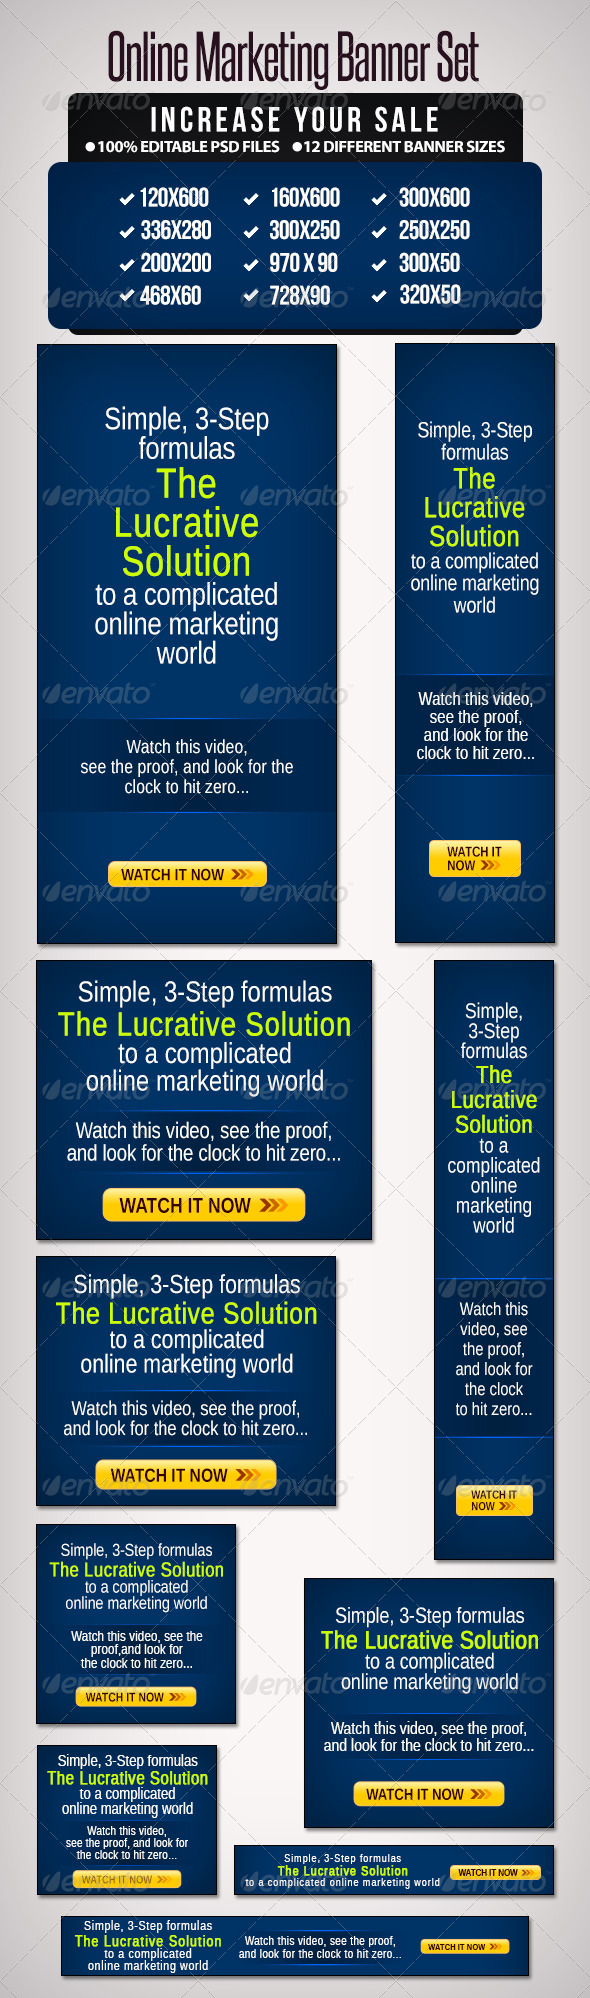 GraphicRiver Online Marketing Banner Set 6641172